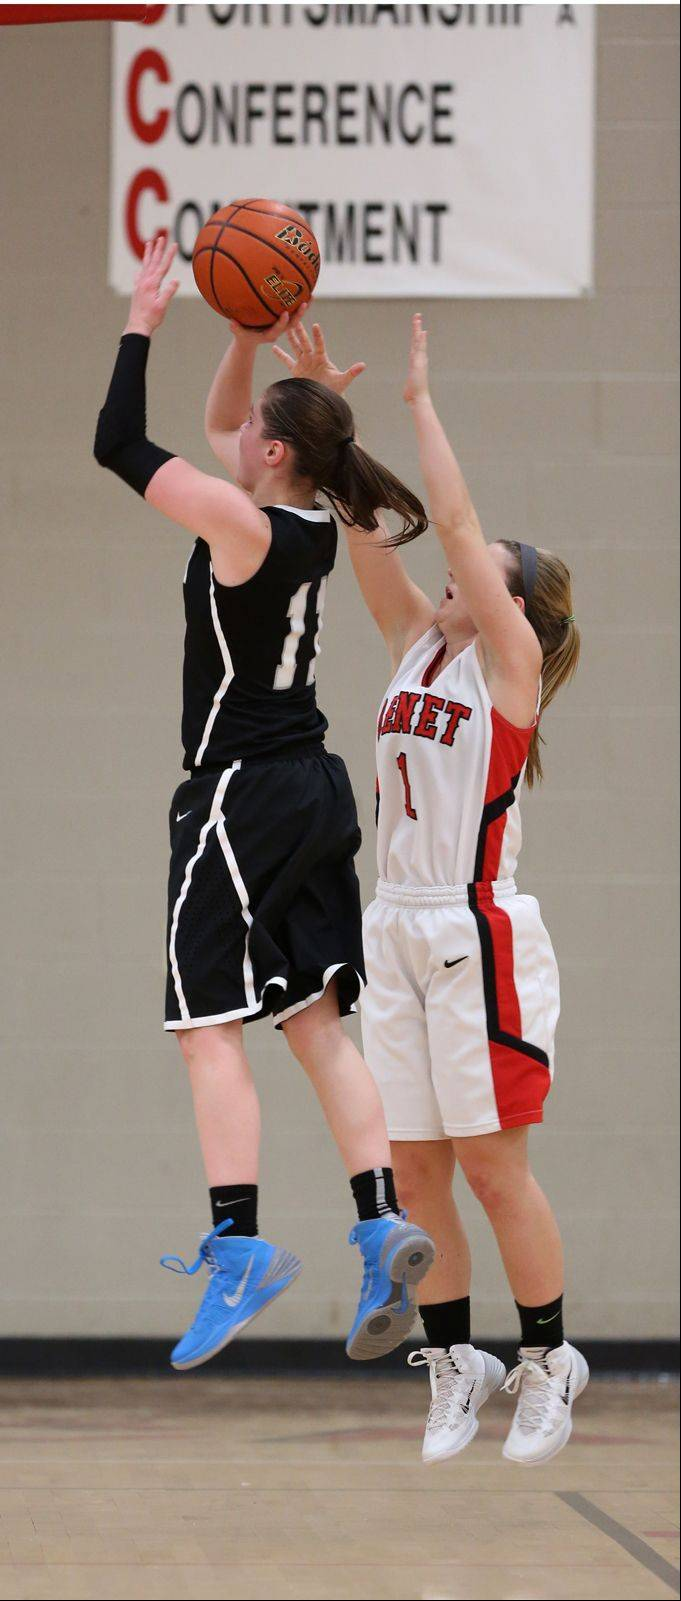 Photos from the Fenwick at Benet Academy girls basketball game on Tuesday, Dec. 17.